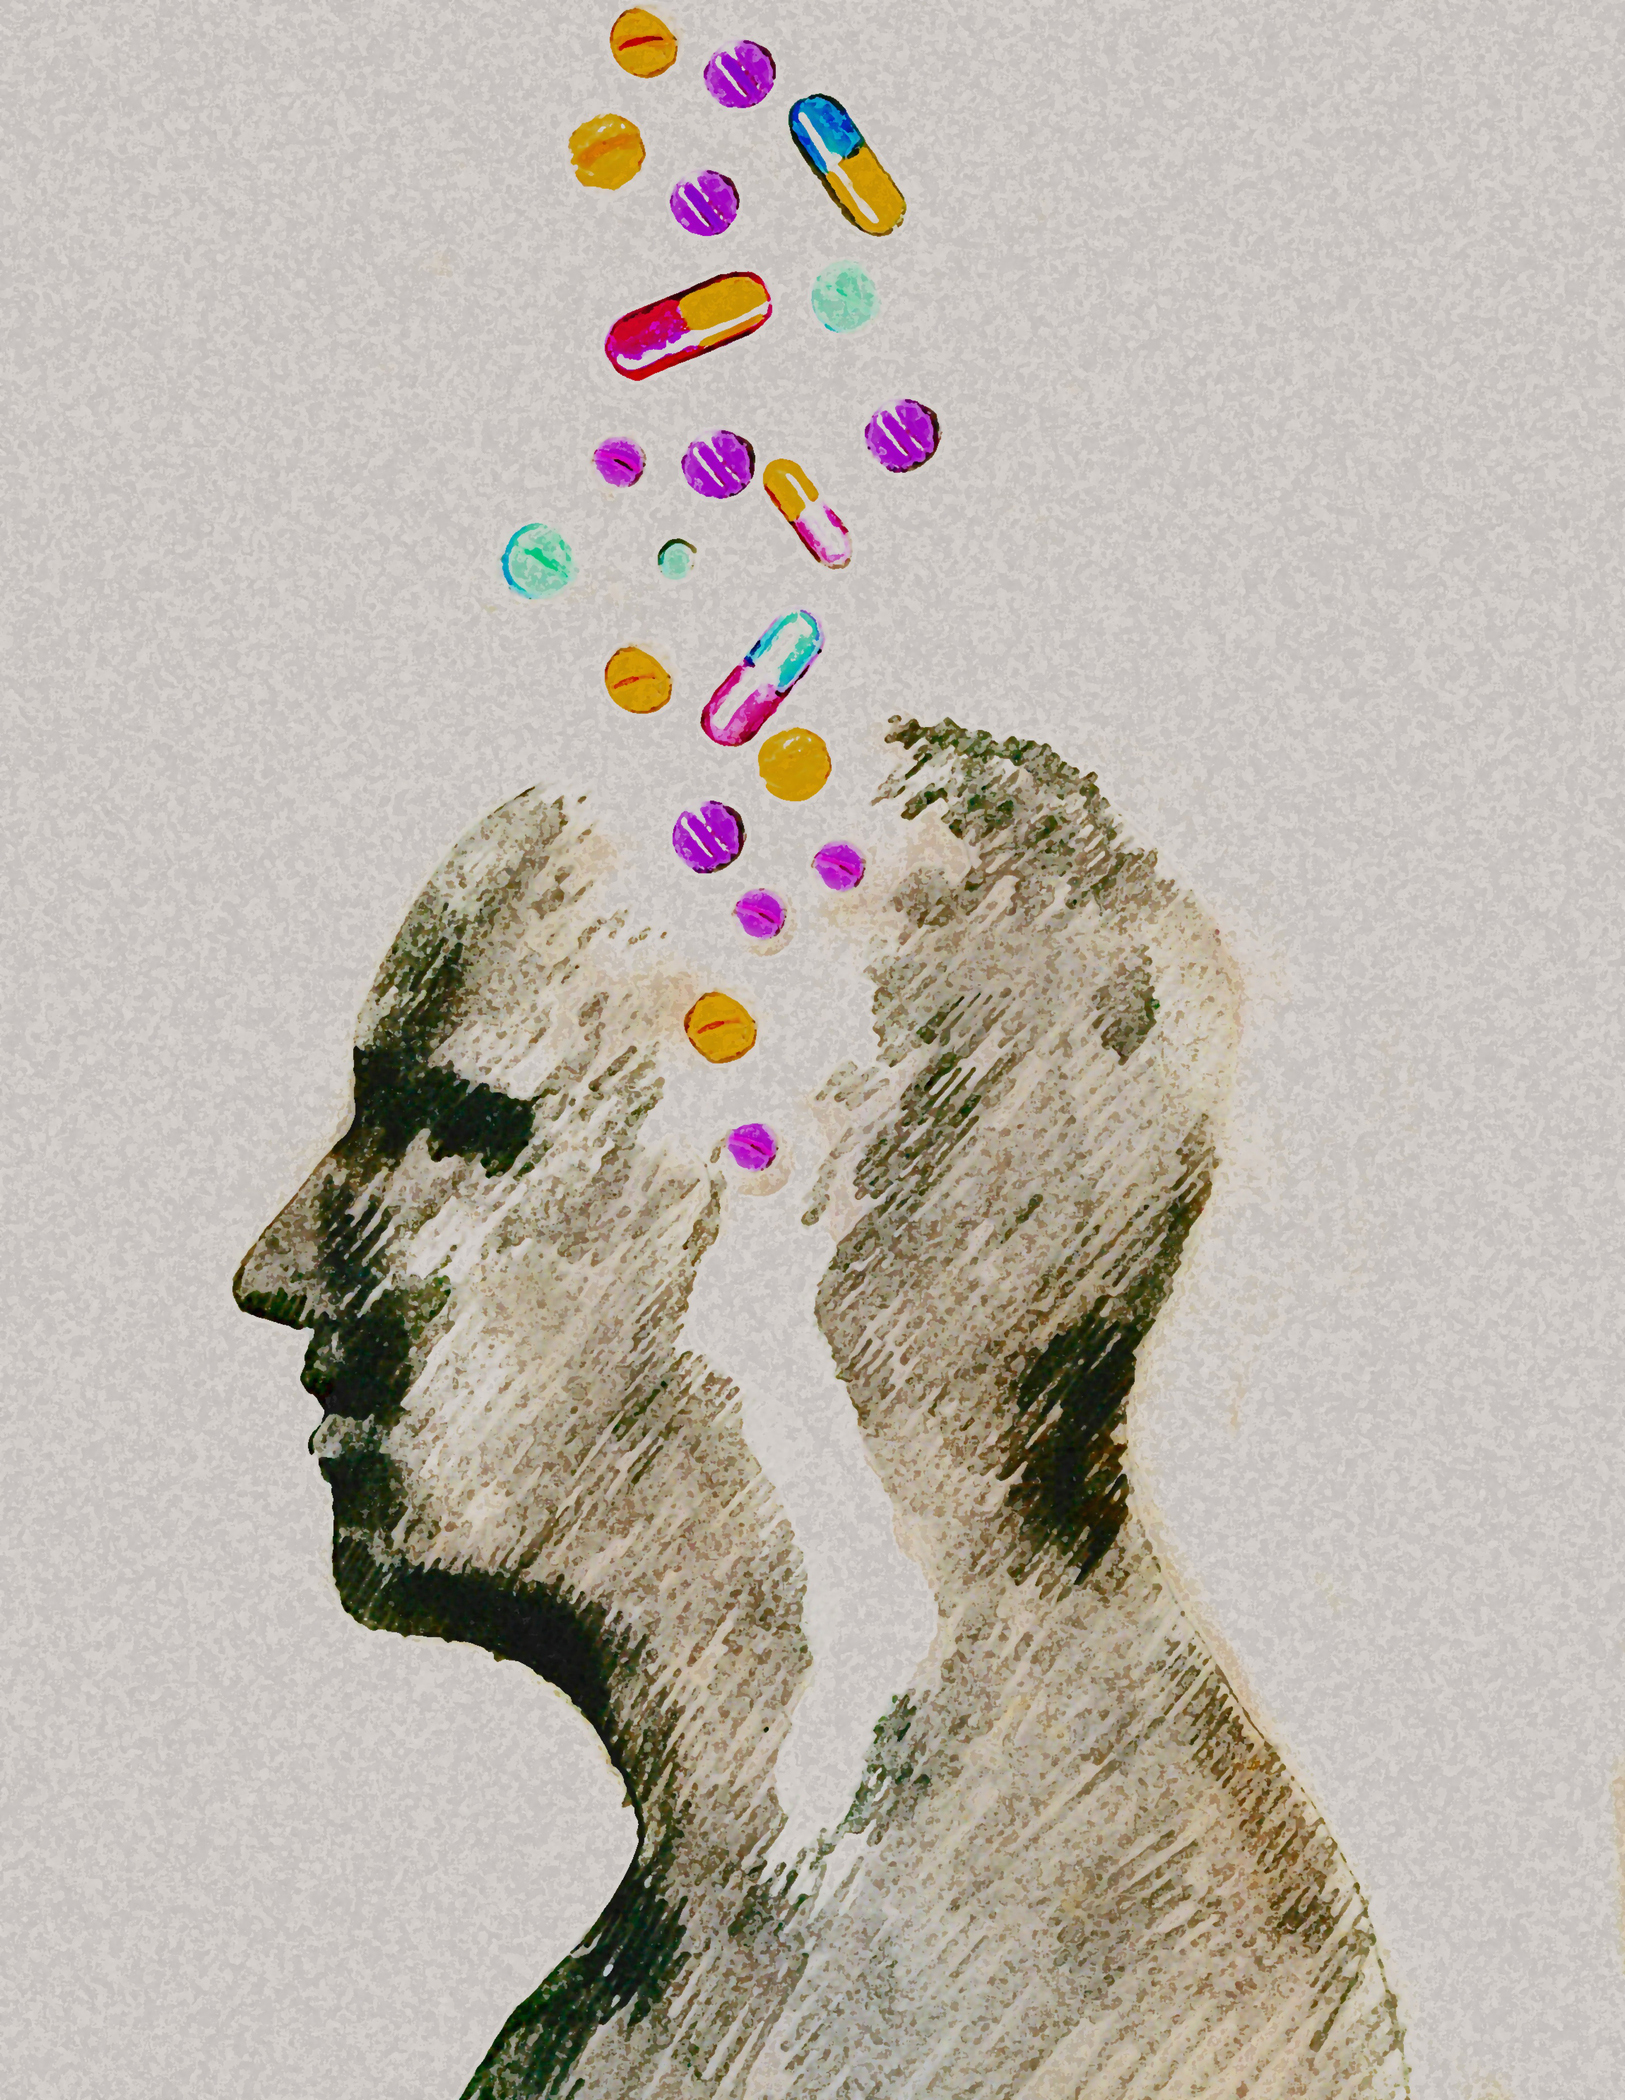 Are Modafinil's Brain-Boosting Benefits Hype Or Science?